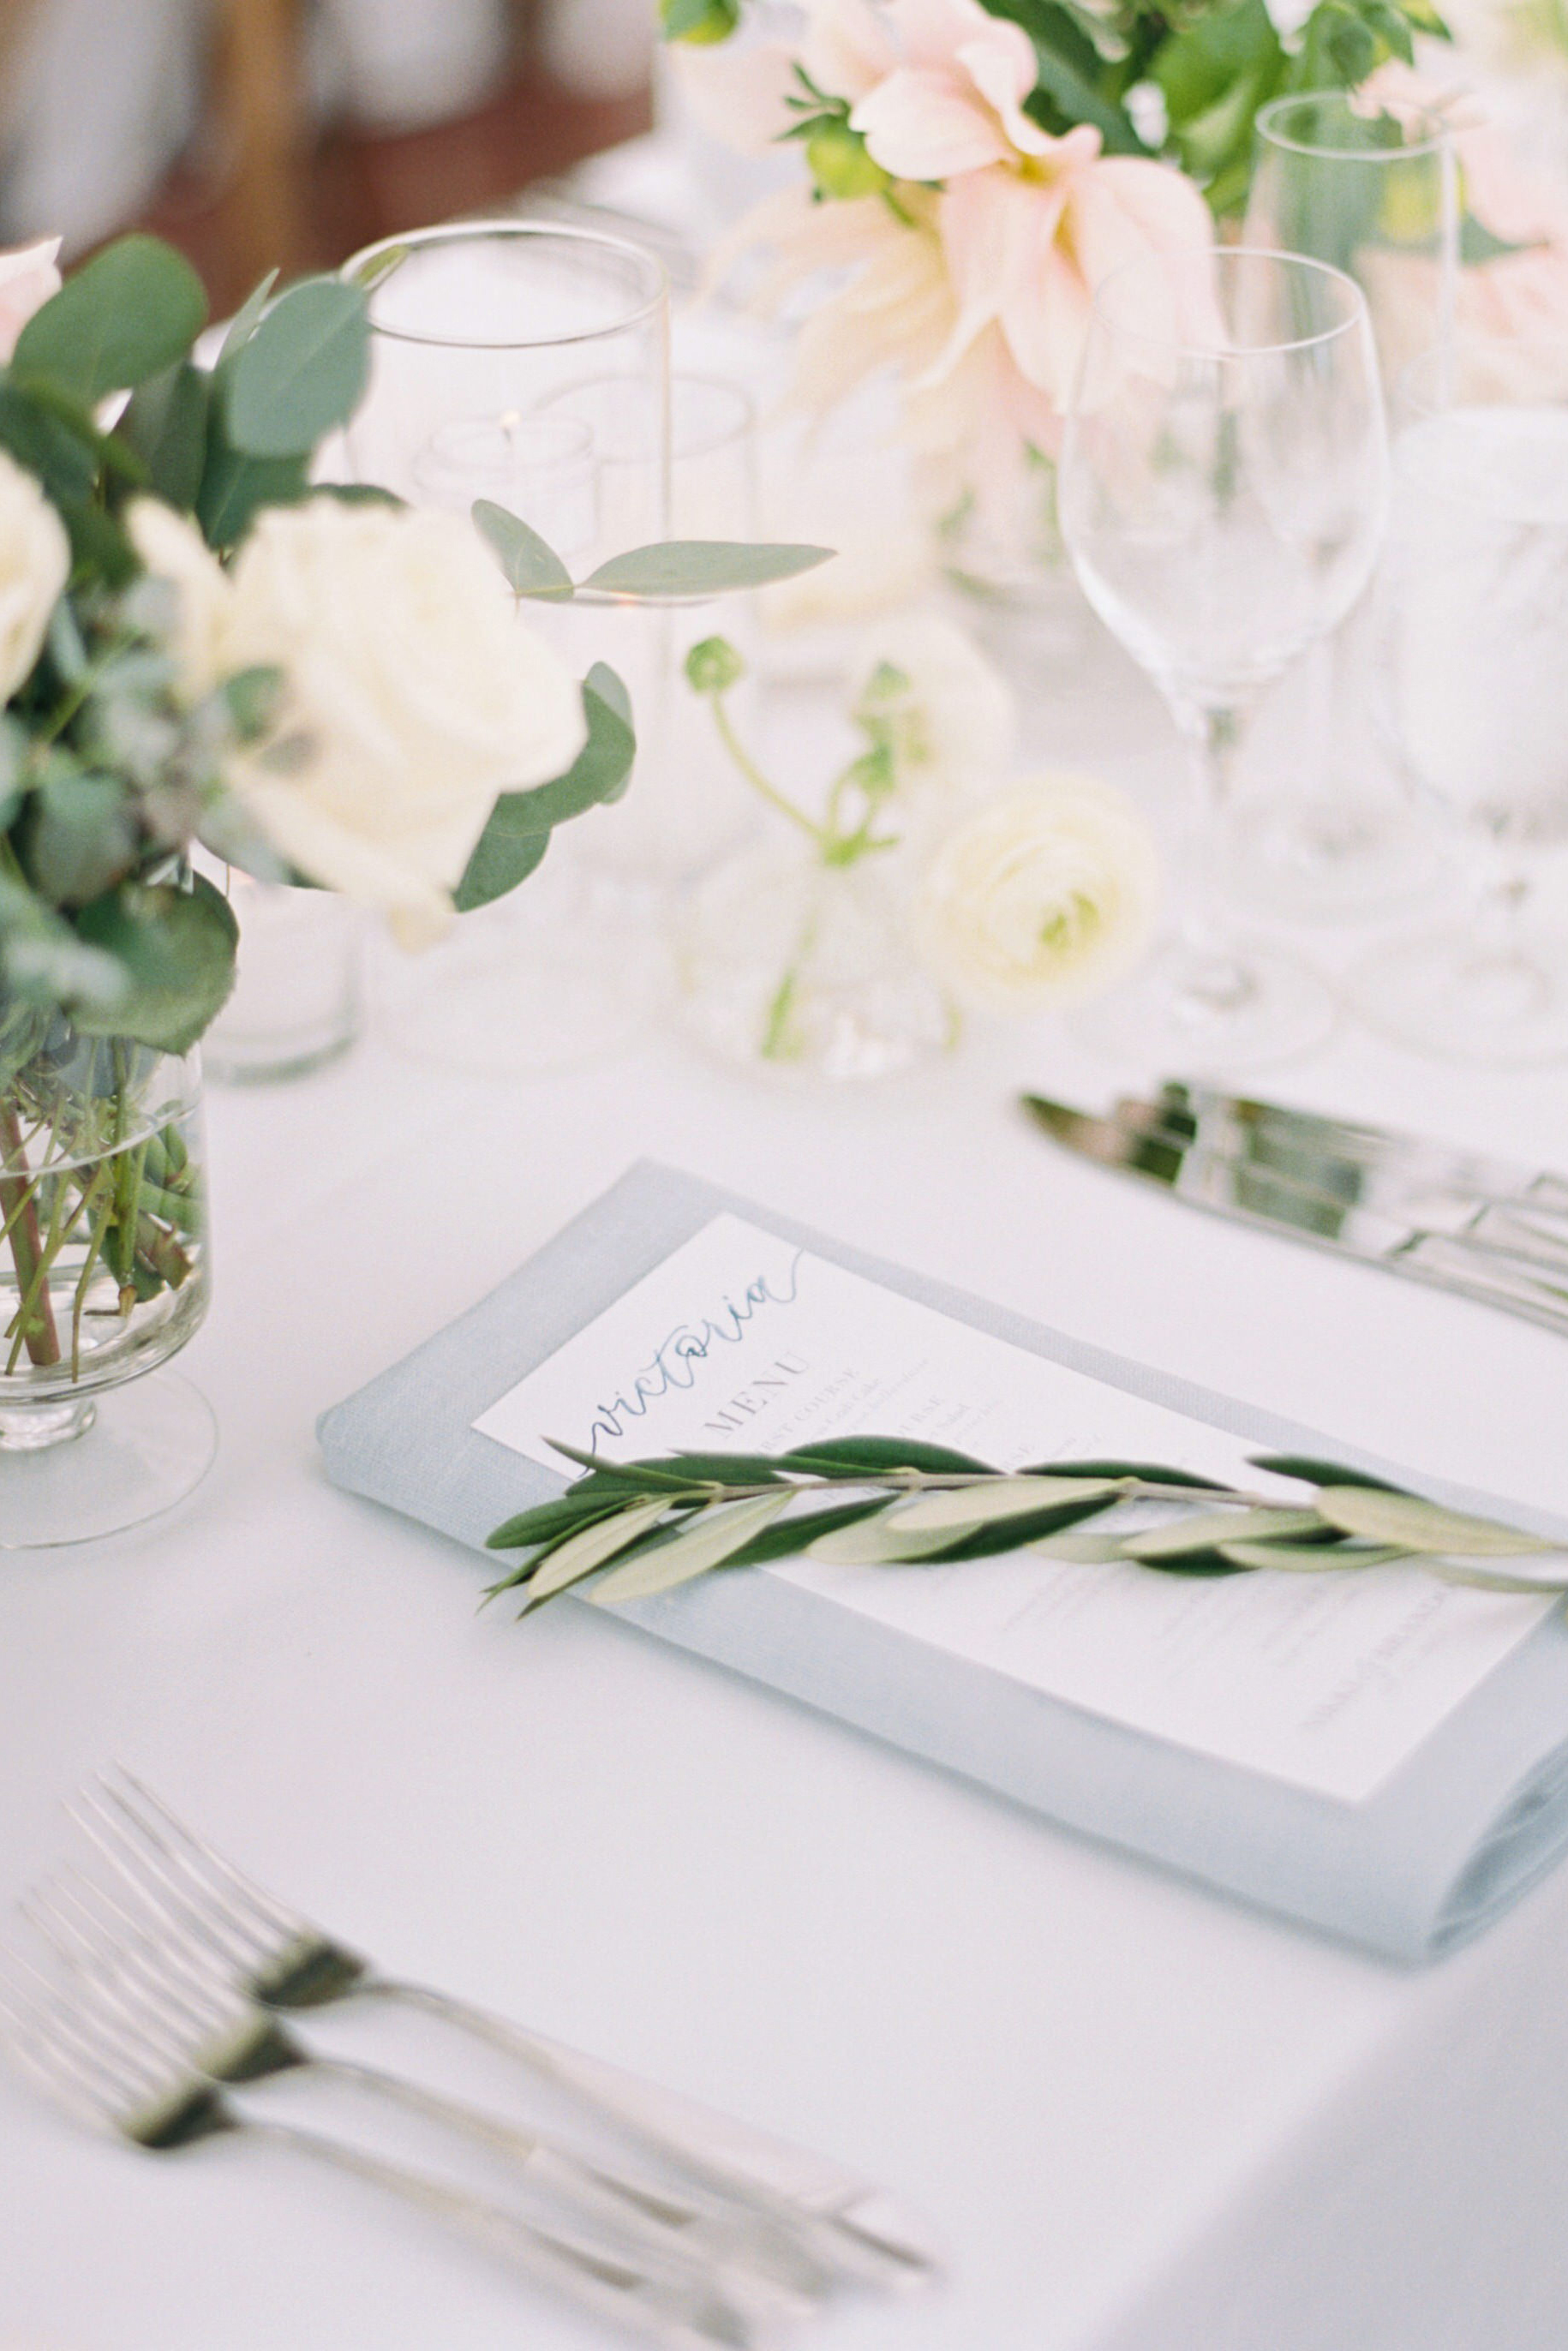 Sam Allen Creates Personalized Watercolor Menu with Guest Name